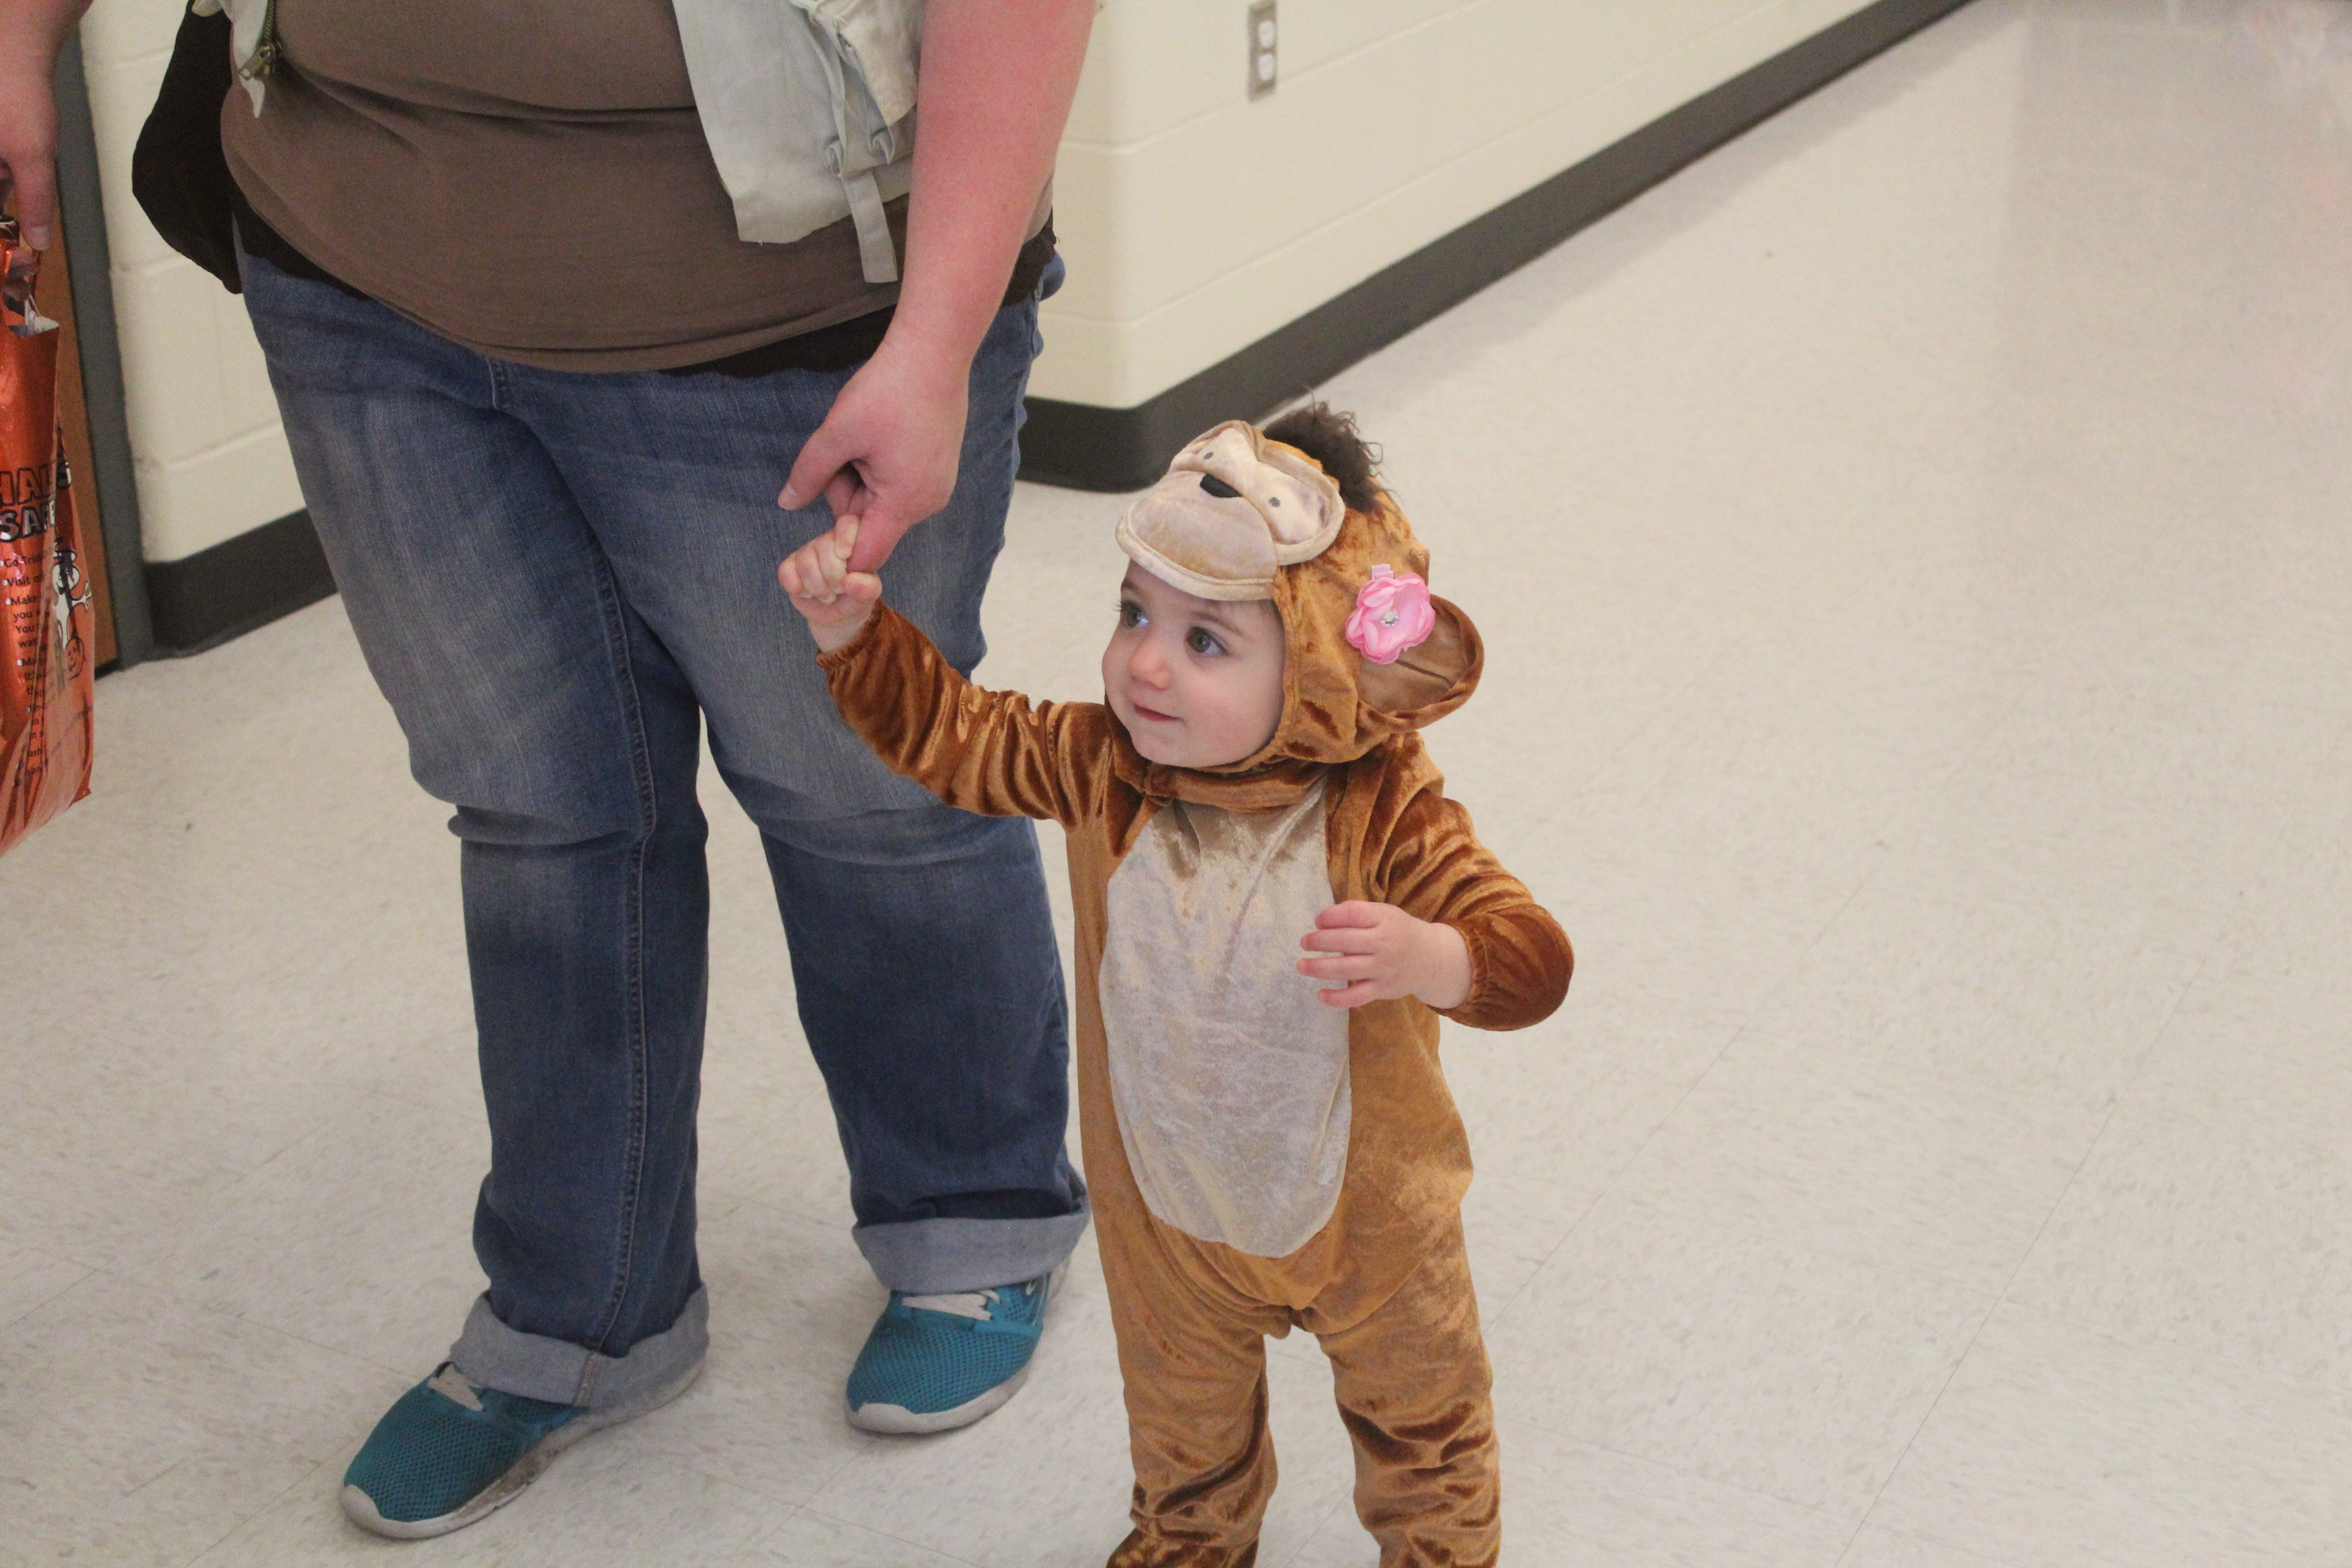 A boy is dressed as a lion